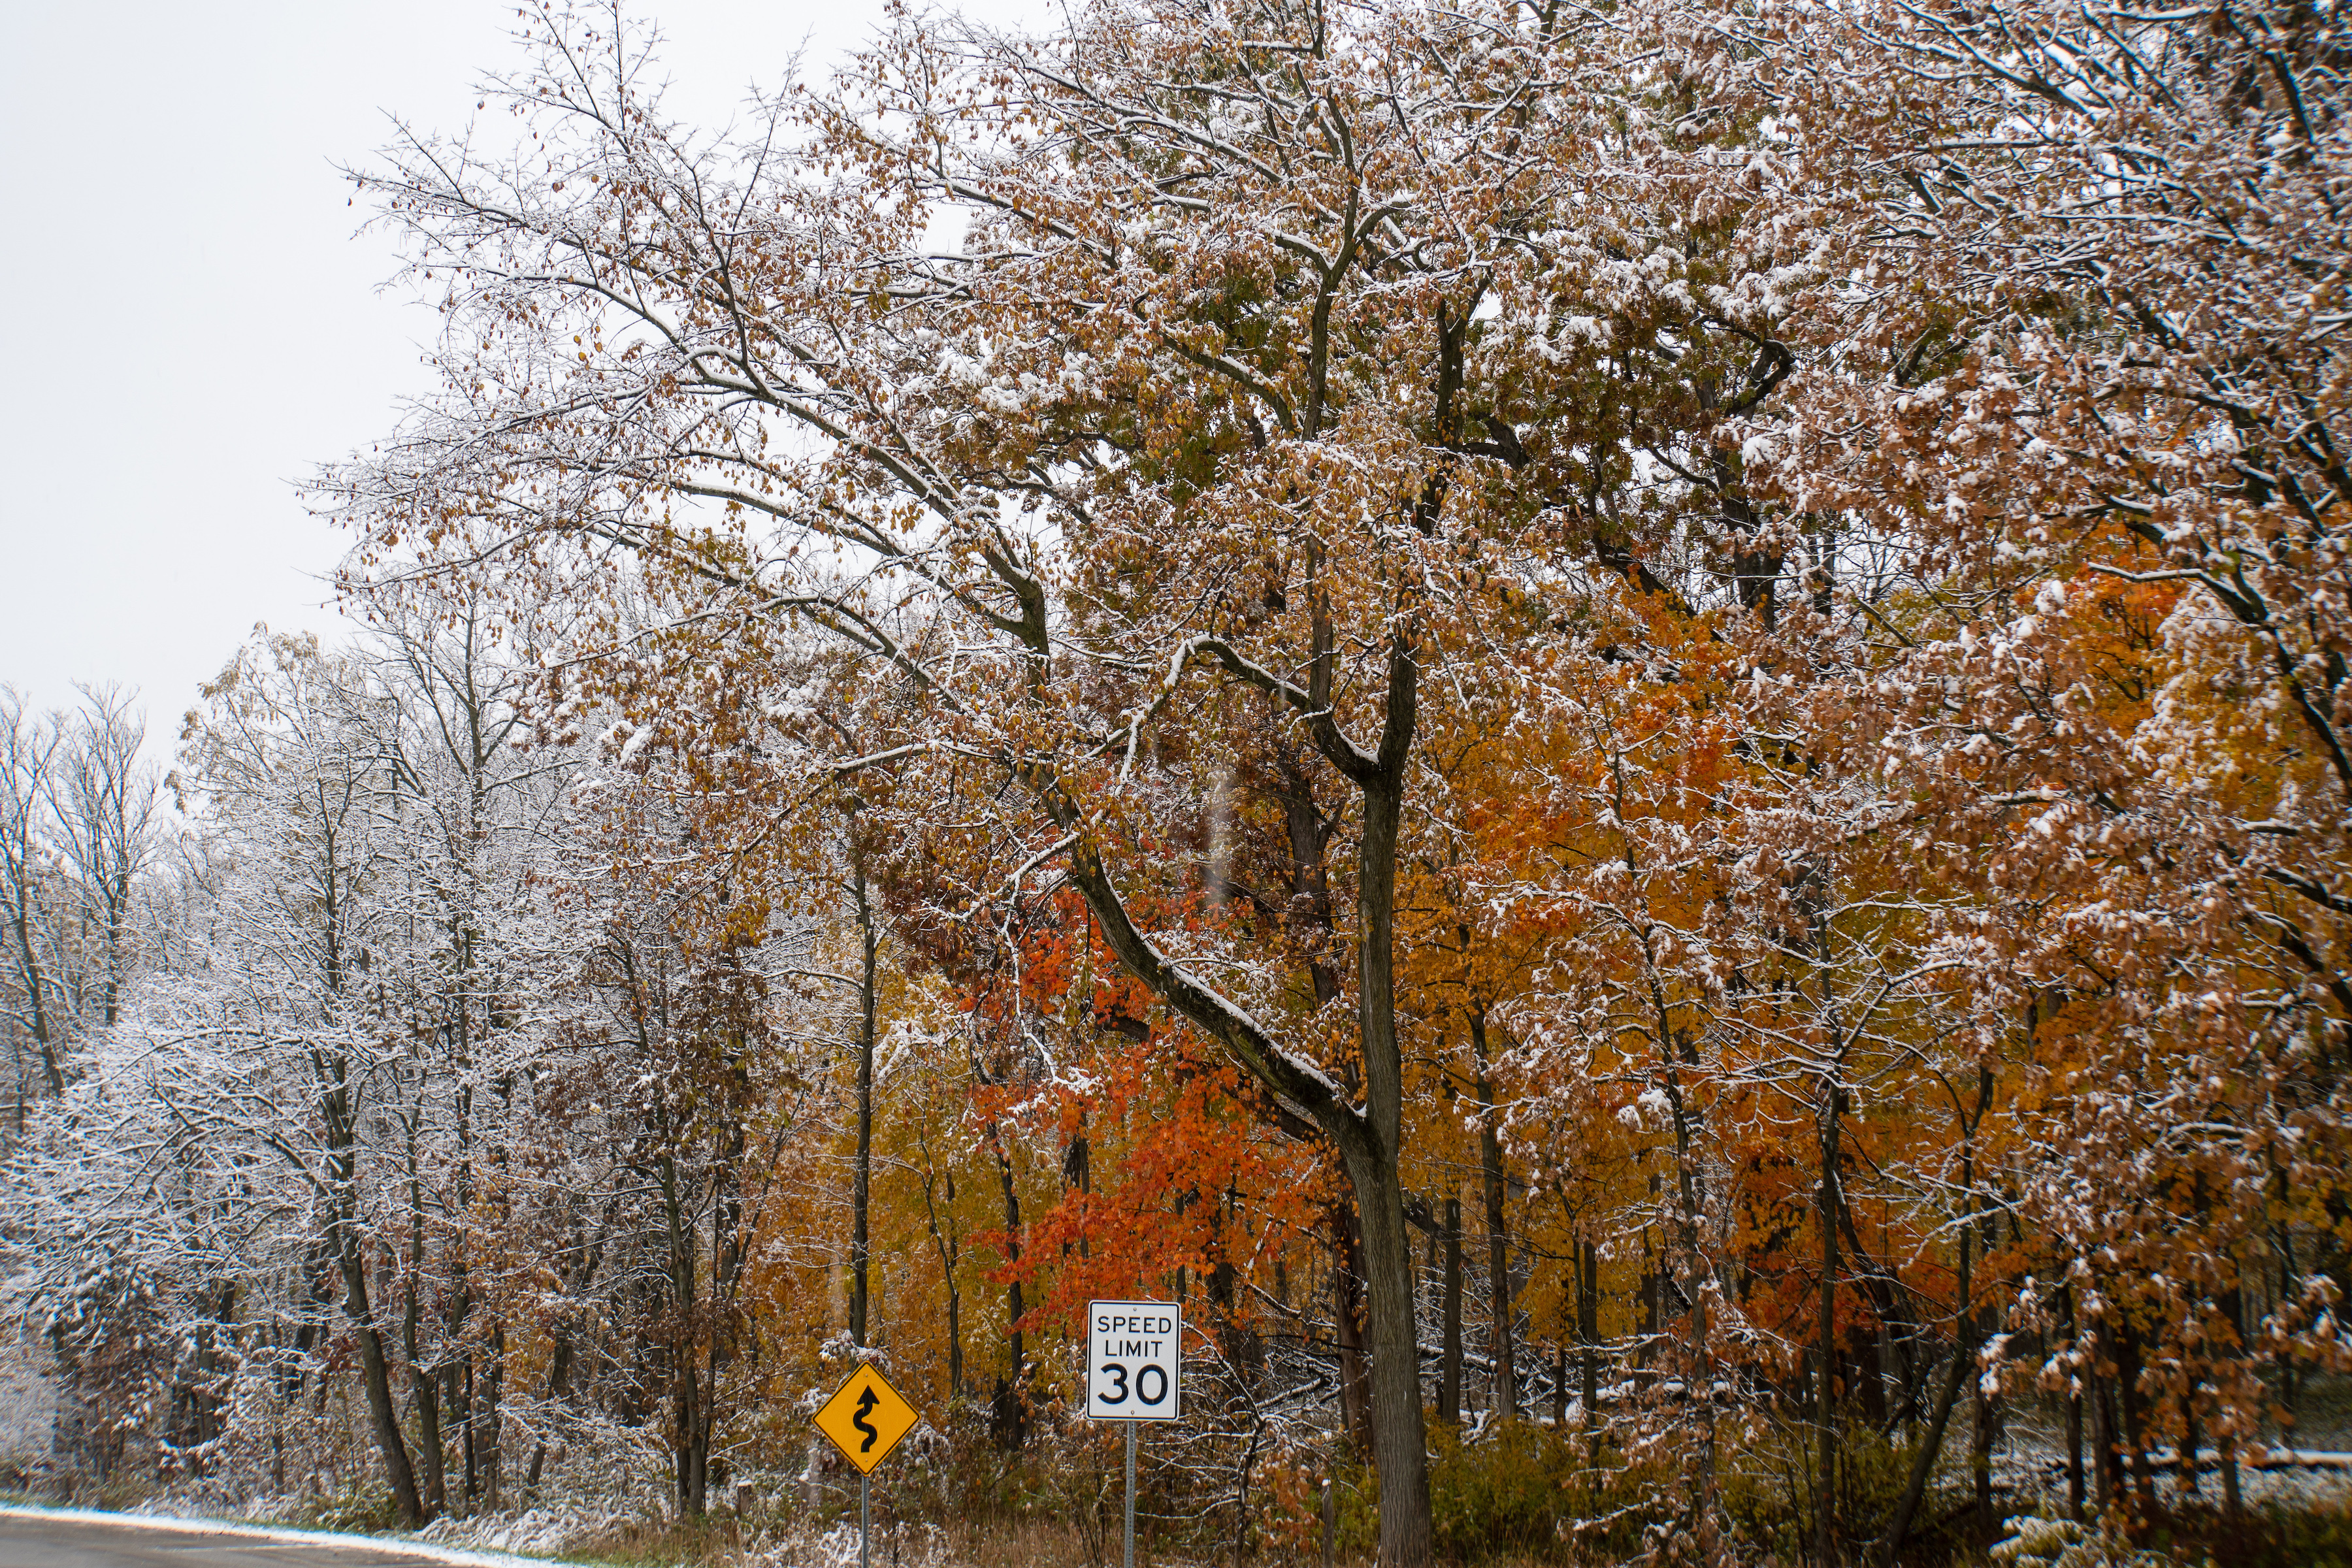 (2/4) The snow on Oct. 30 show the difference a day makes in the fall scenery. nature, landscape, fall, autumn, winter, snow, woods, tree, plant Photo: Marguerite Tonjes